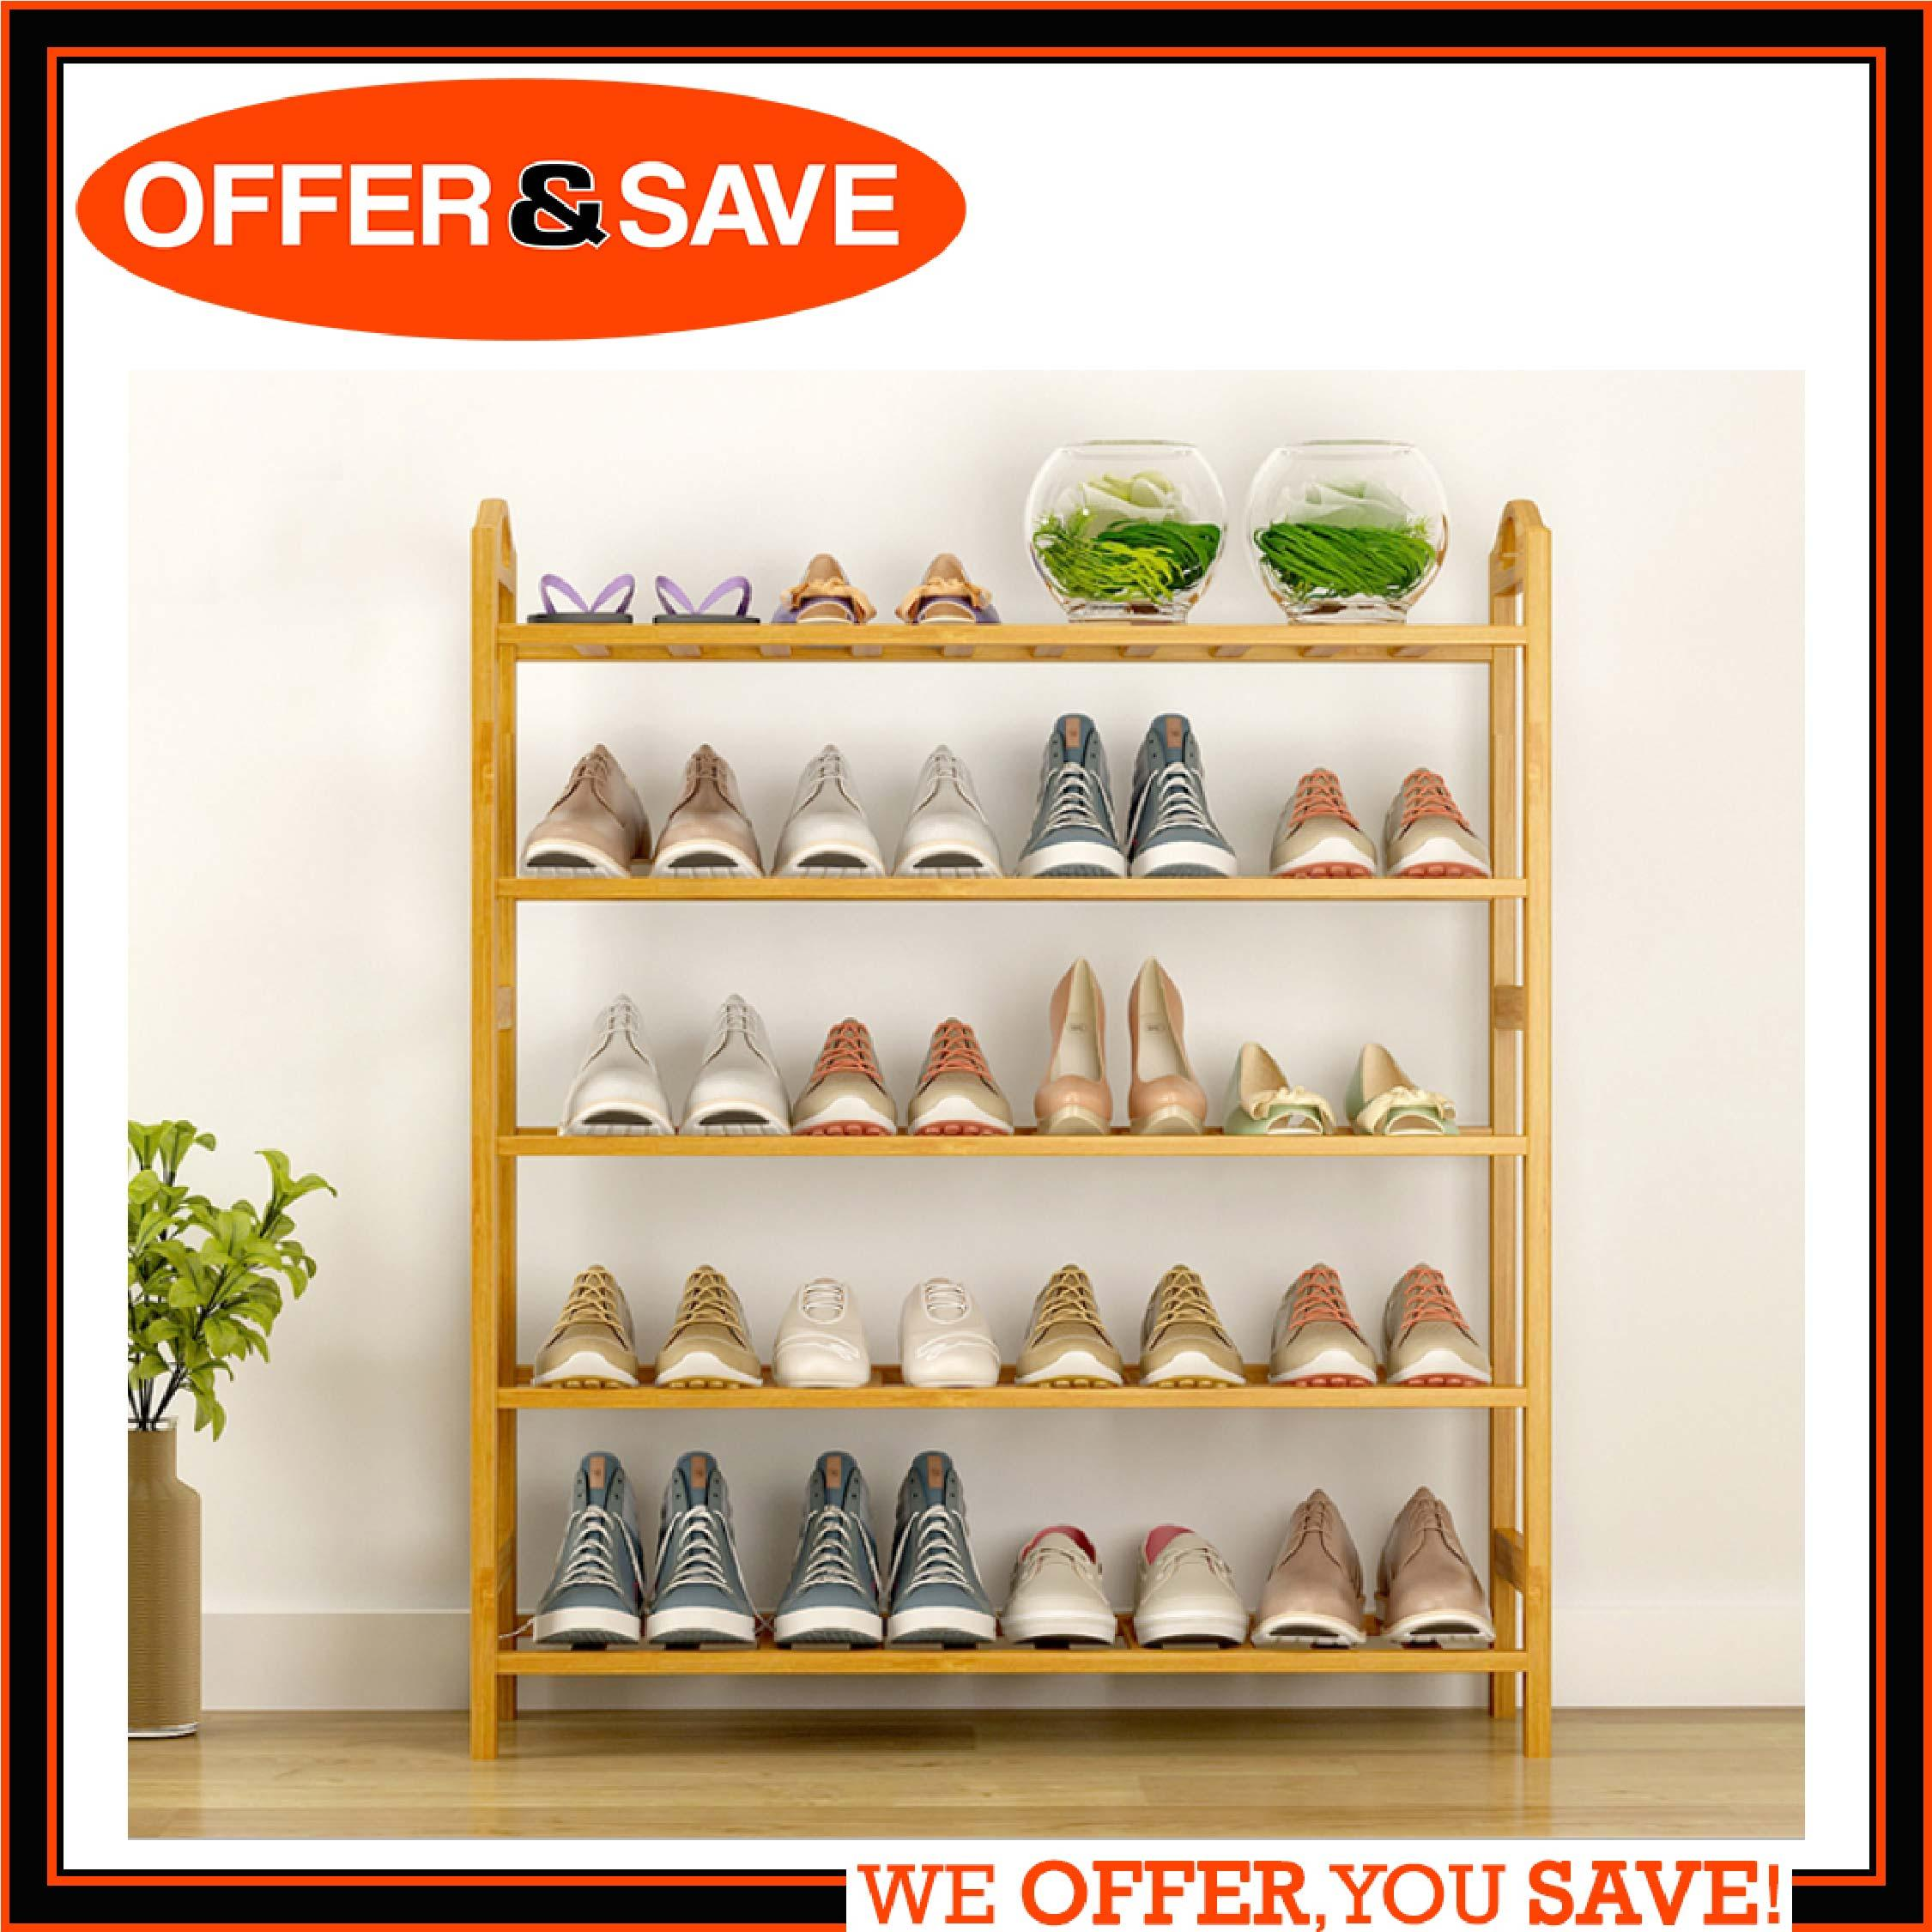 ONS 5 Tiers Natural Bamboo Shoe Rack - Durable Wooden Shoe Organizer/Space Saving/Environmentally Friendly/Utility Storage Shelf for Home